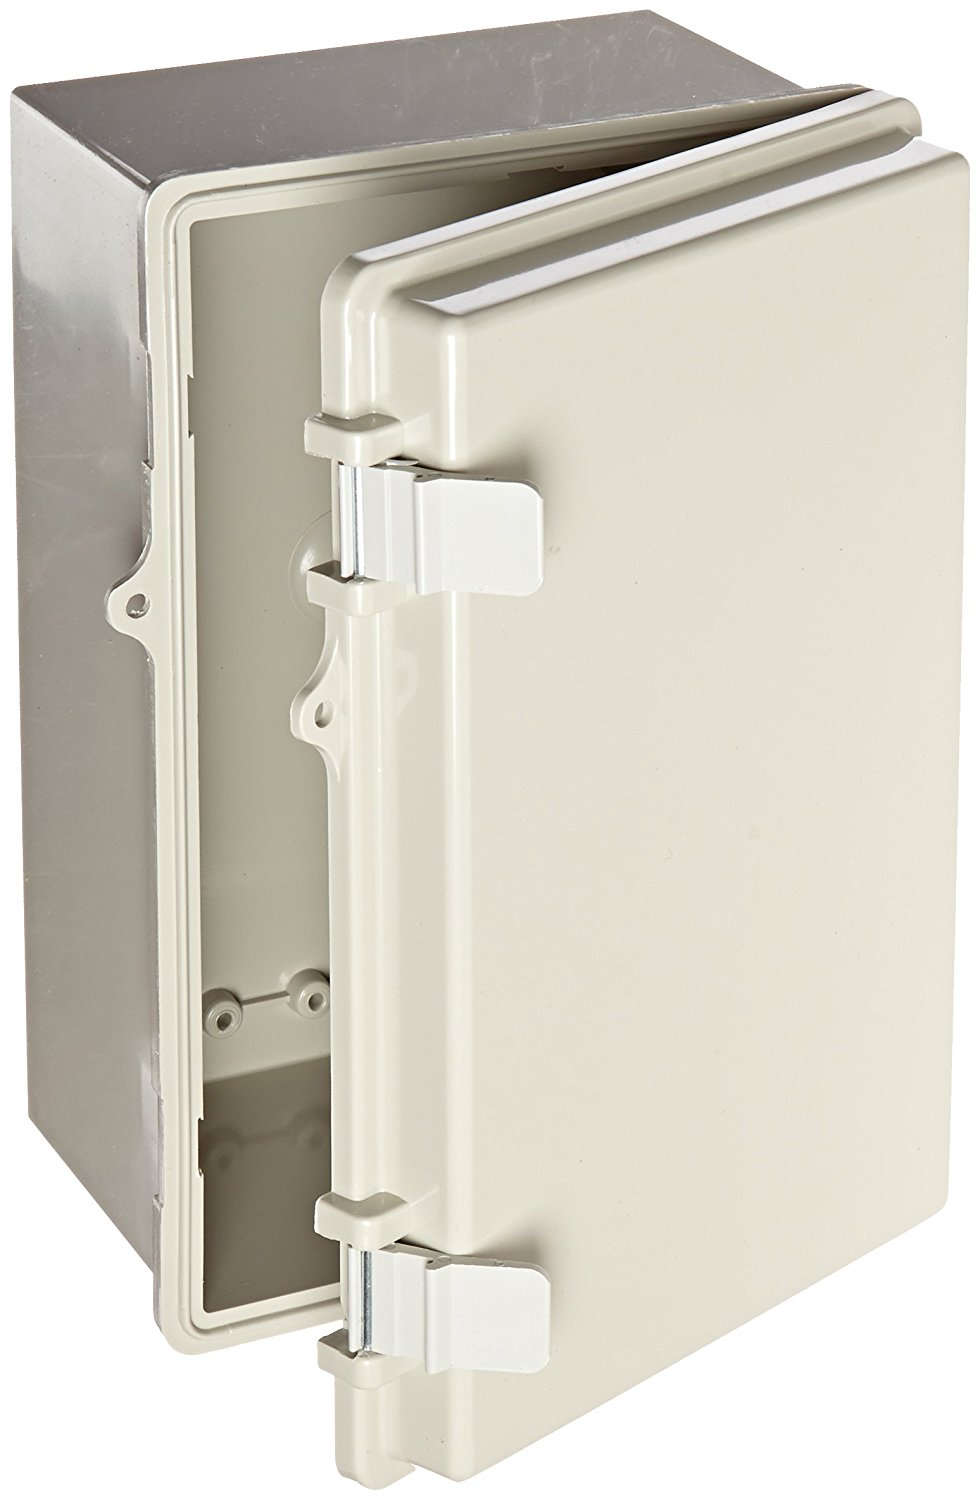 """BUD Industries NBB-10243 Style B Plastic Indoor Box with Solid Door, 11-17/64"""" Length x 7-15/32"""" Width x 5-1/2"""" Height, Light Gray Finish"""